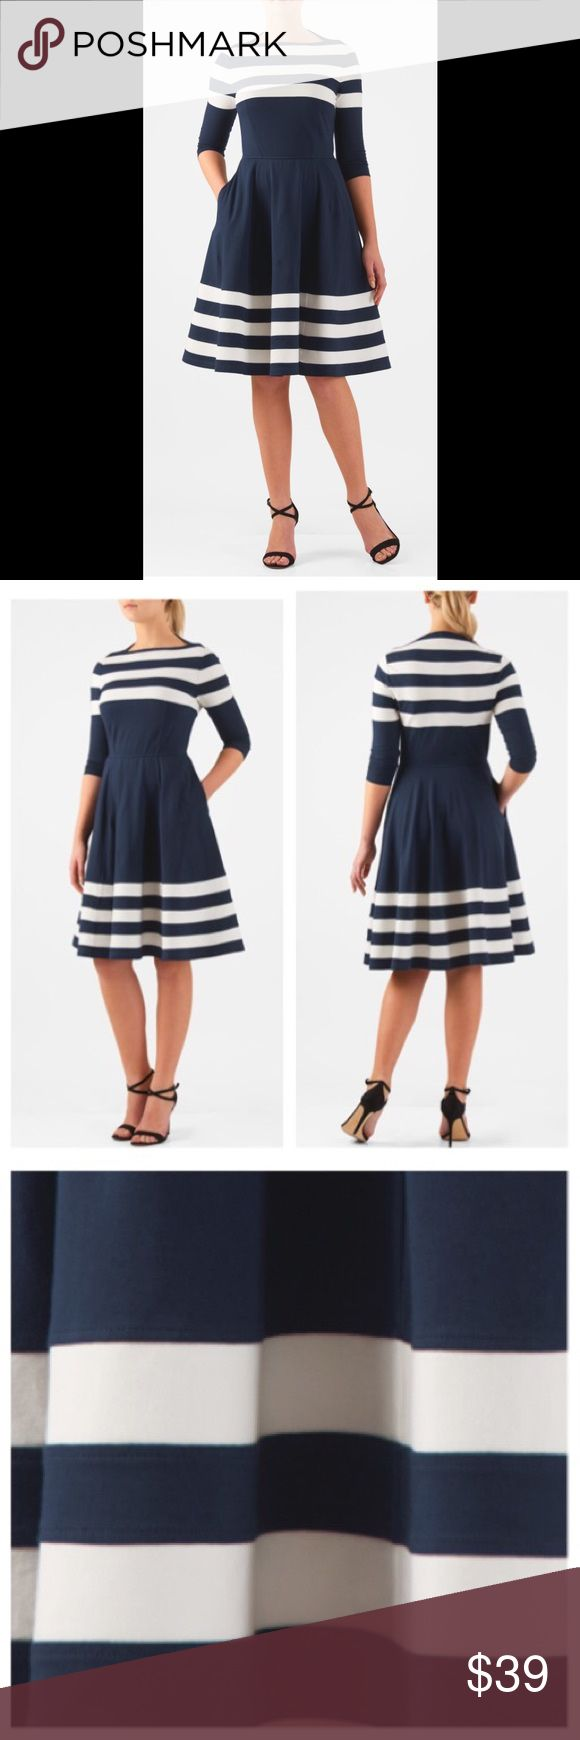 """New Eshakti Navy Fit Flare Striped Dress 16W New Eshakti navy striped fit flare dress 16W Measured flat:Underarm to underarm:41"""" Waist:35-38"""" Length:38 1/2"""" Sleeve:23"""" Eshakti size guide for 16W bust:43"""" Slips on overhead, high boat neck, nipped in elastic waist. Flared skirt w/ side seam pockets. Cotton/spandex, jersey knit, light stretch, light structured feel, mid-weight. Machine wash. New w/ cut out Eshakti tag to prevent returning to Eshakti *Sleeves of this dress are longer. Sleeves in…"""